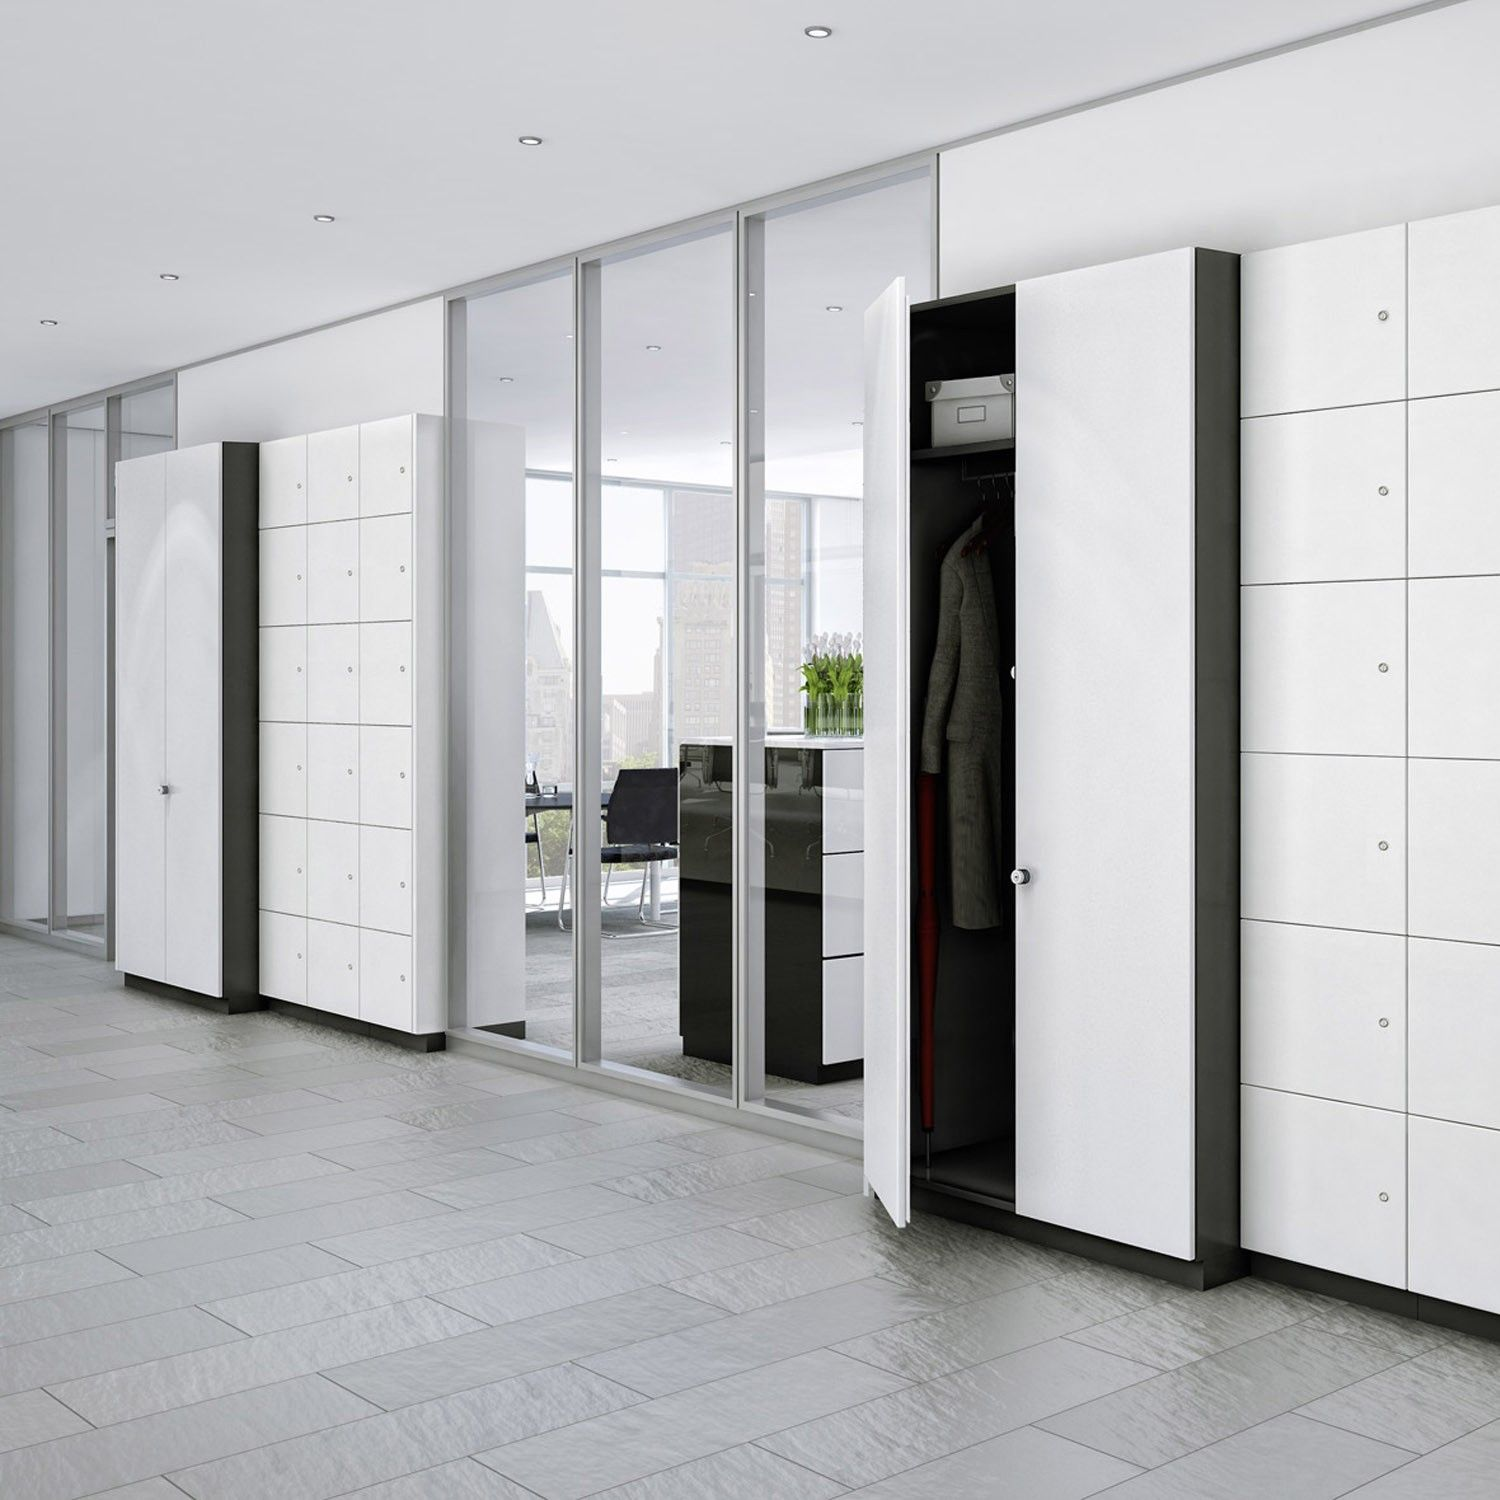 Allvia Storage Wall - Offices  Storage Solutions - Pinterest